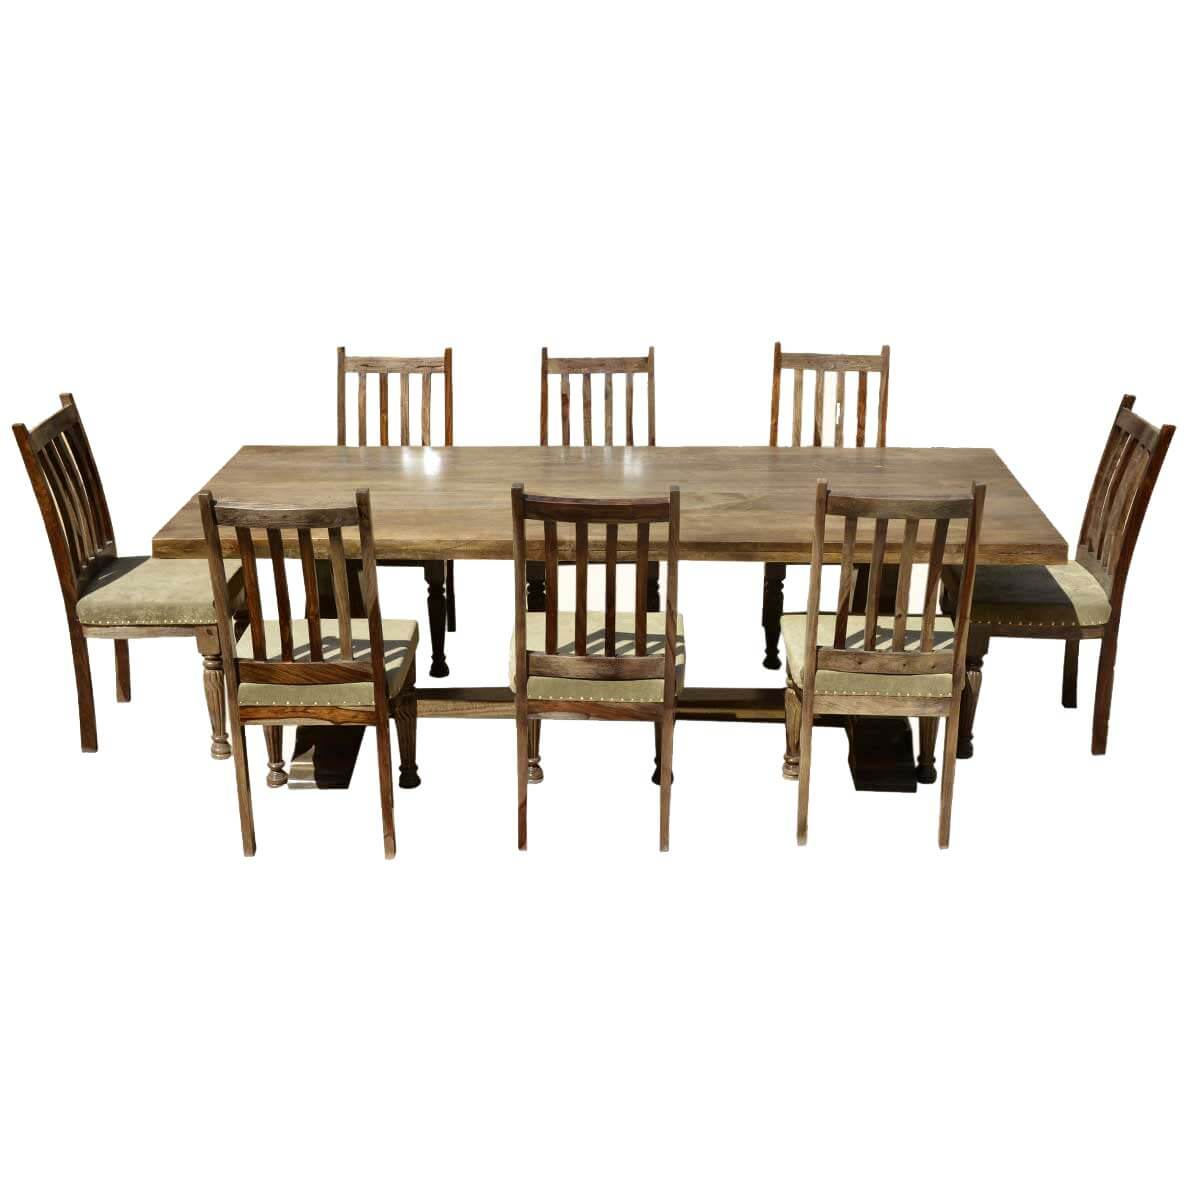 Farmhouse solid wood trestle rustic dining table for Farmhouse dining room table set